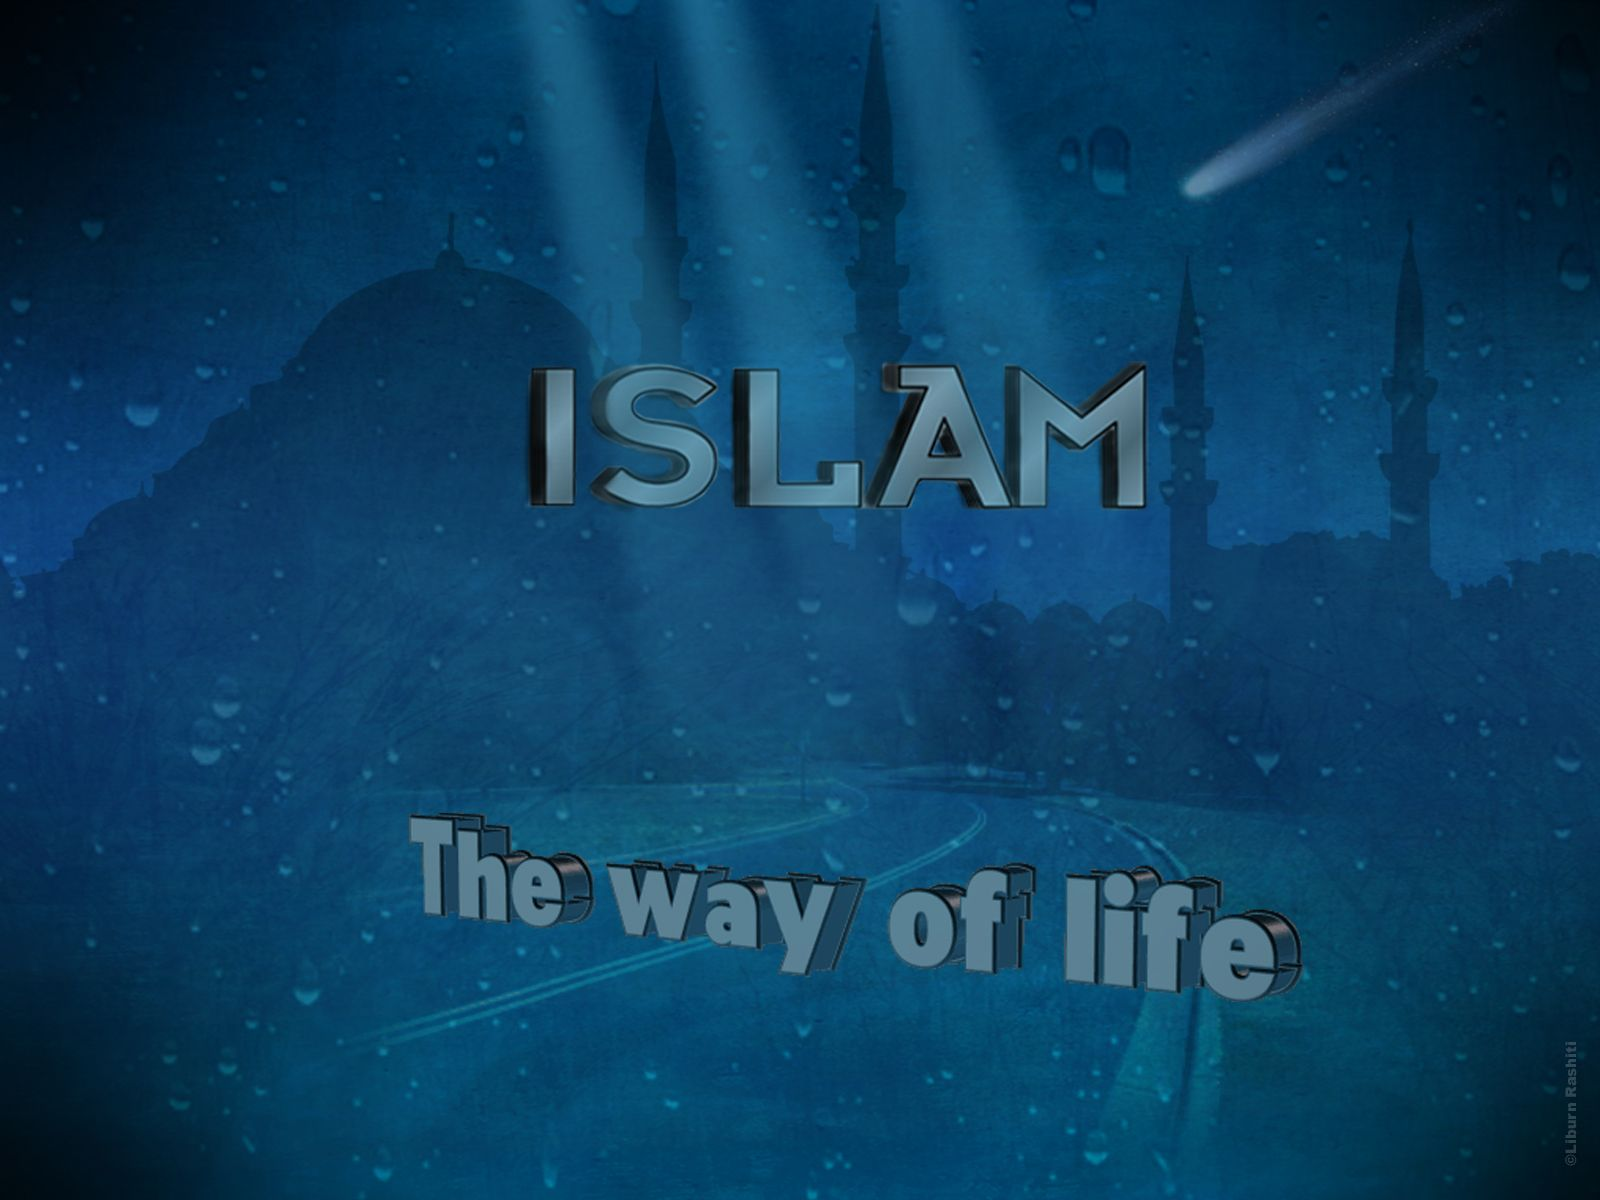 All Islam Wallpapers Free Download Islamic